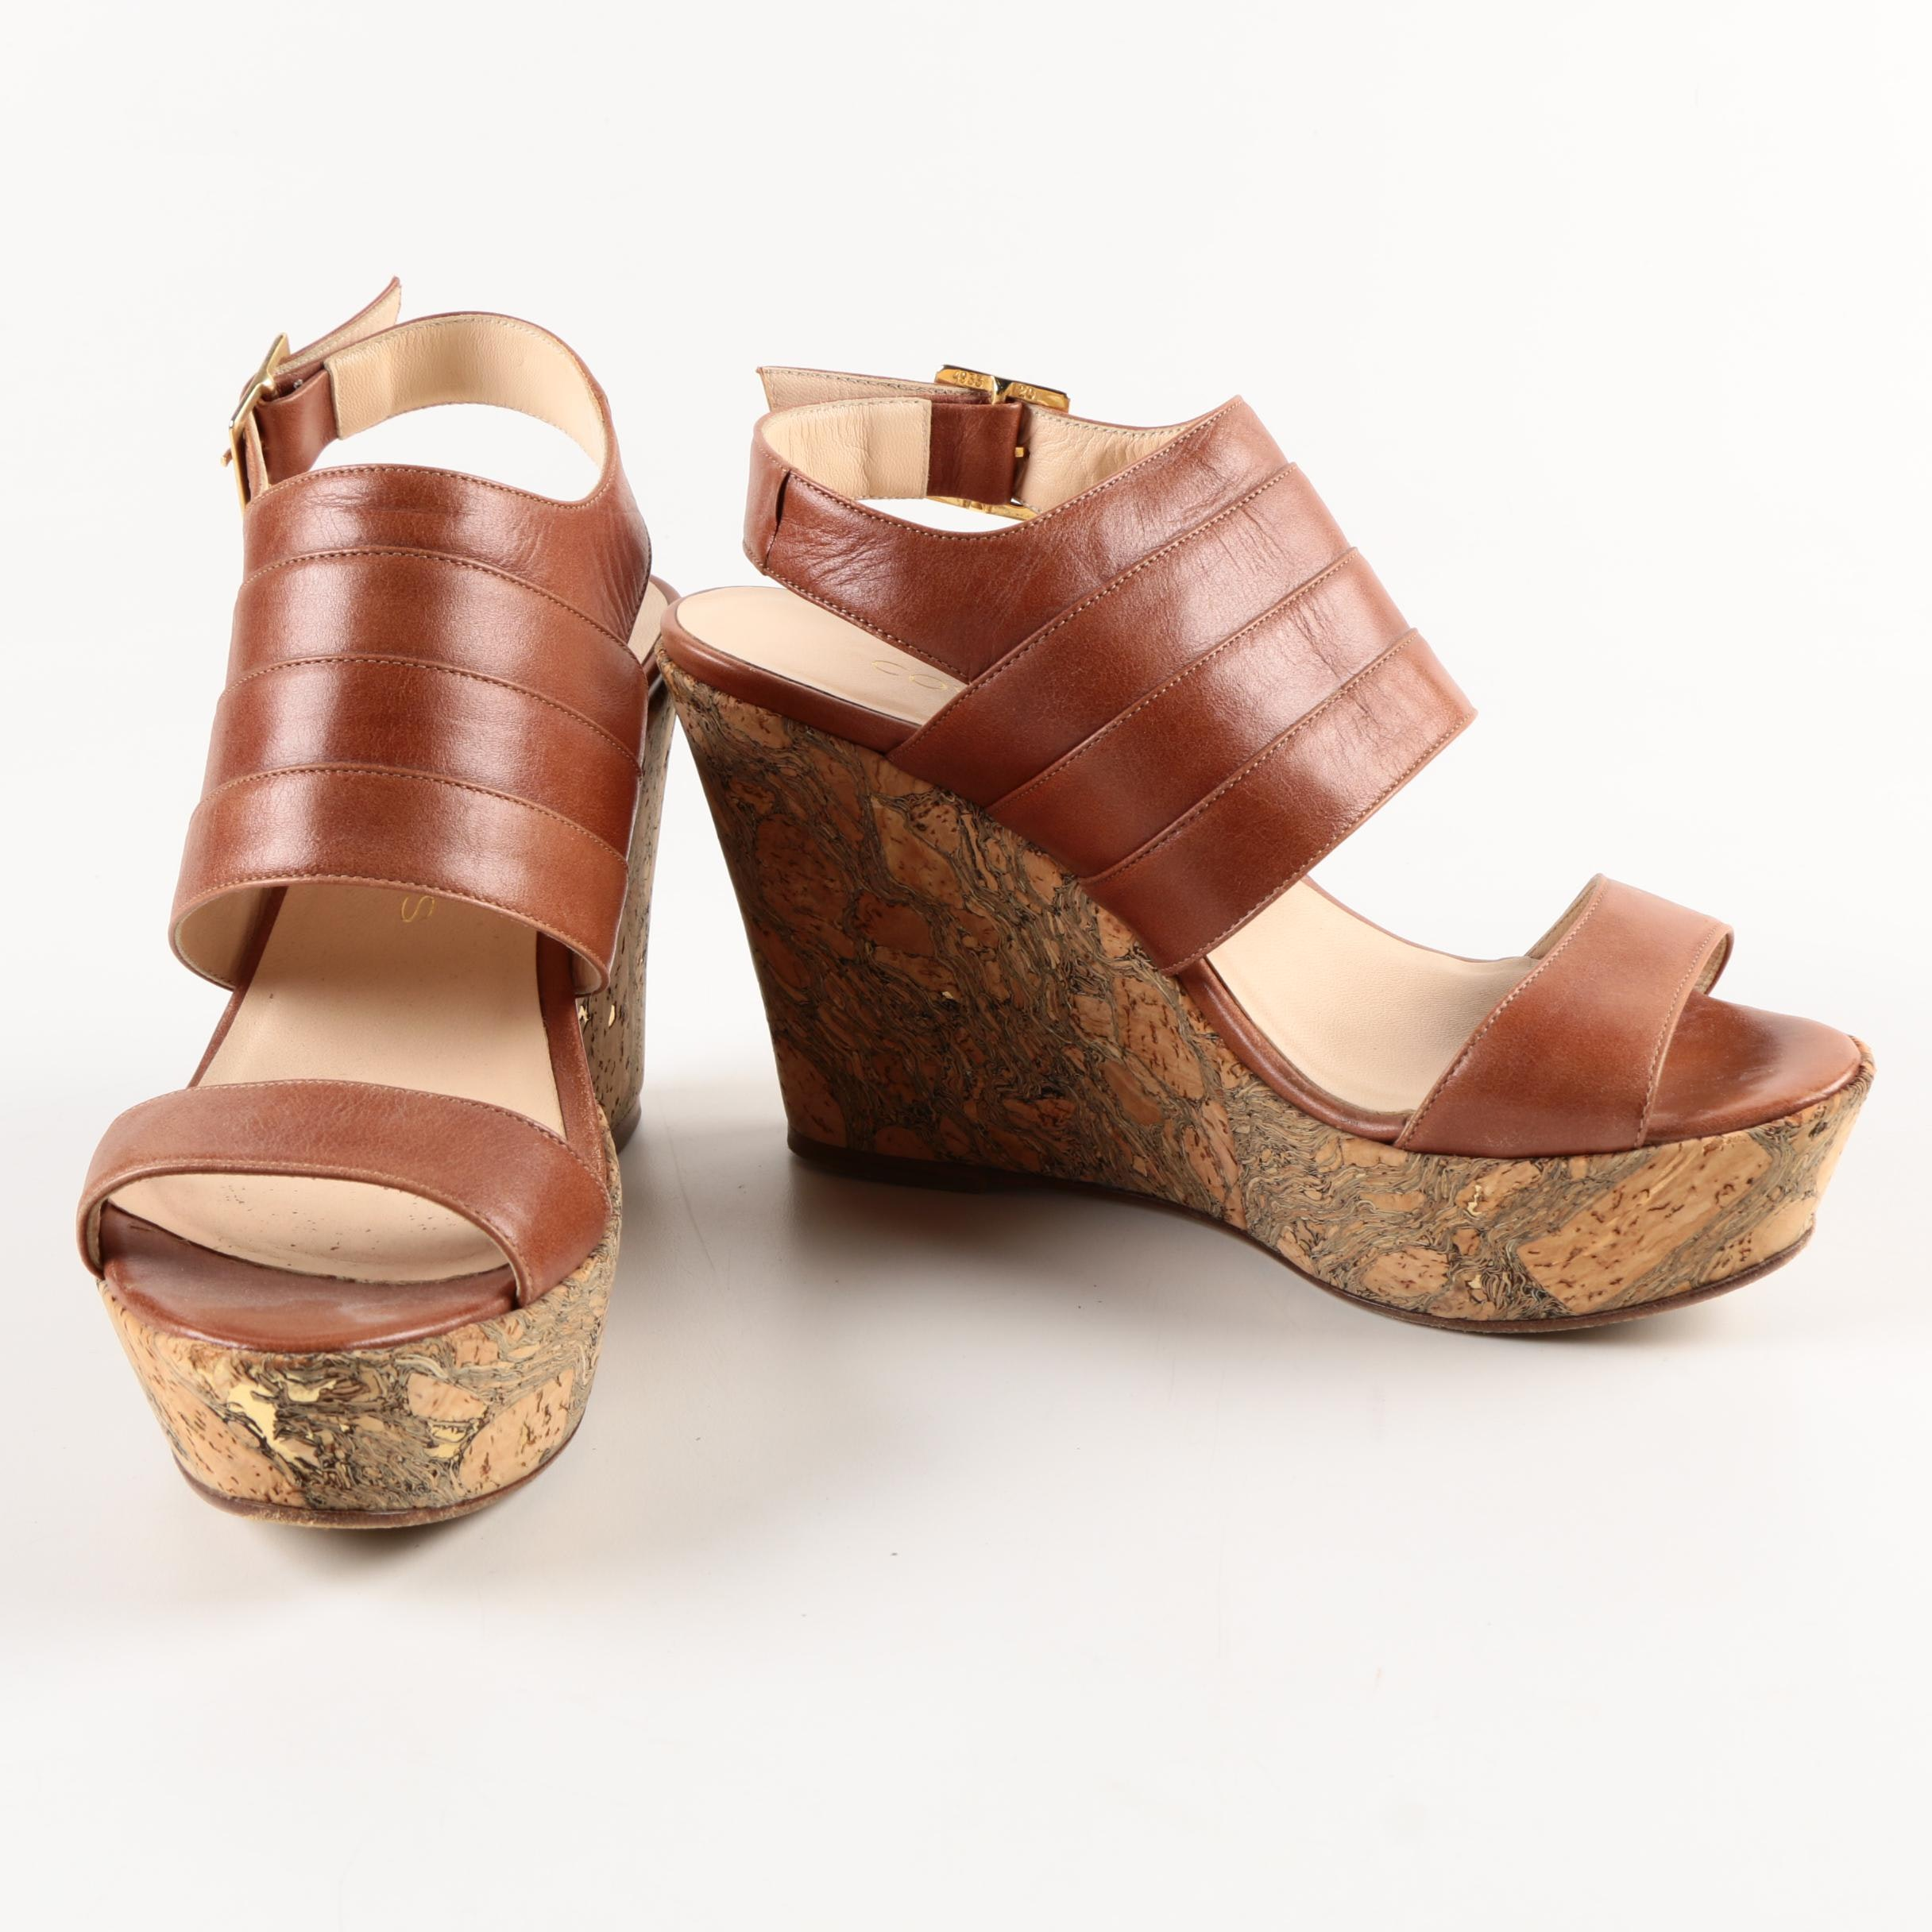 Coye Nokes Brown Leather Wedge Sandals